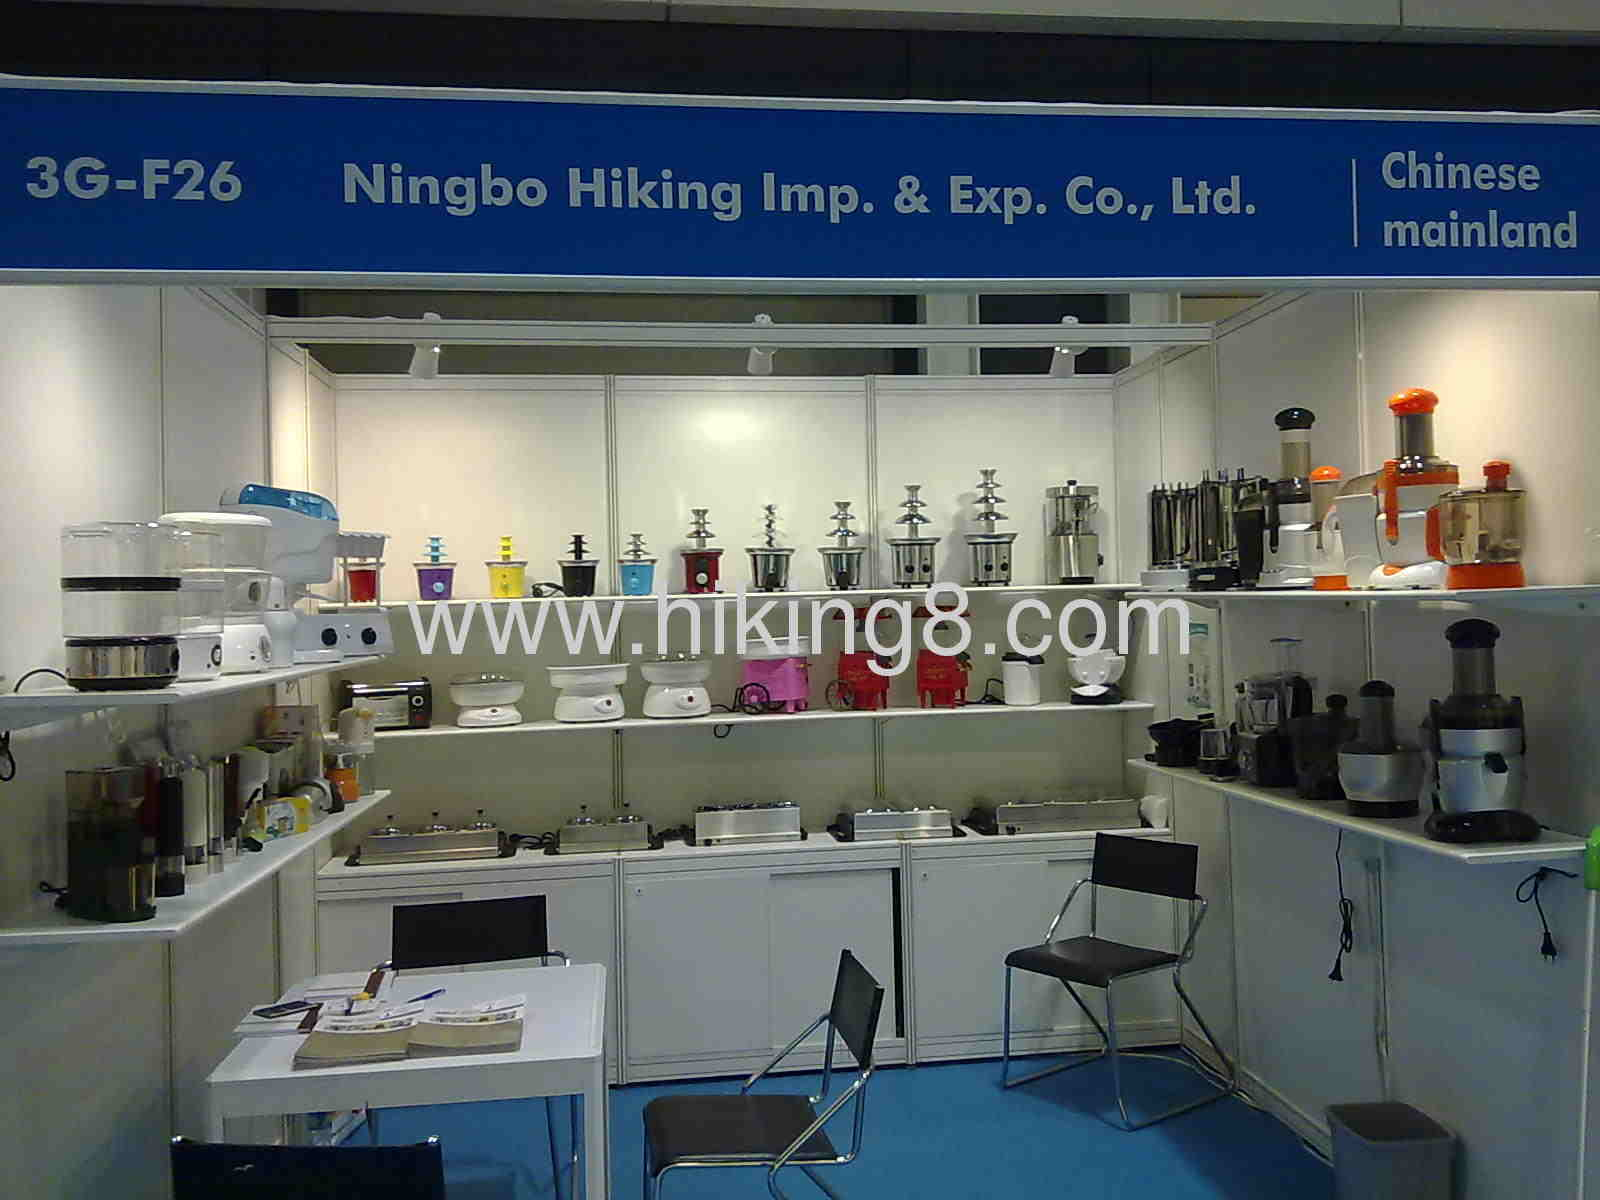 2010 Autumn HK Electronic Product Fair